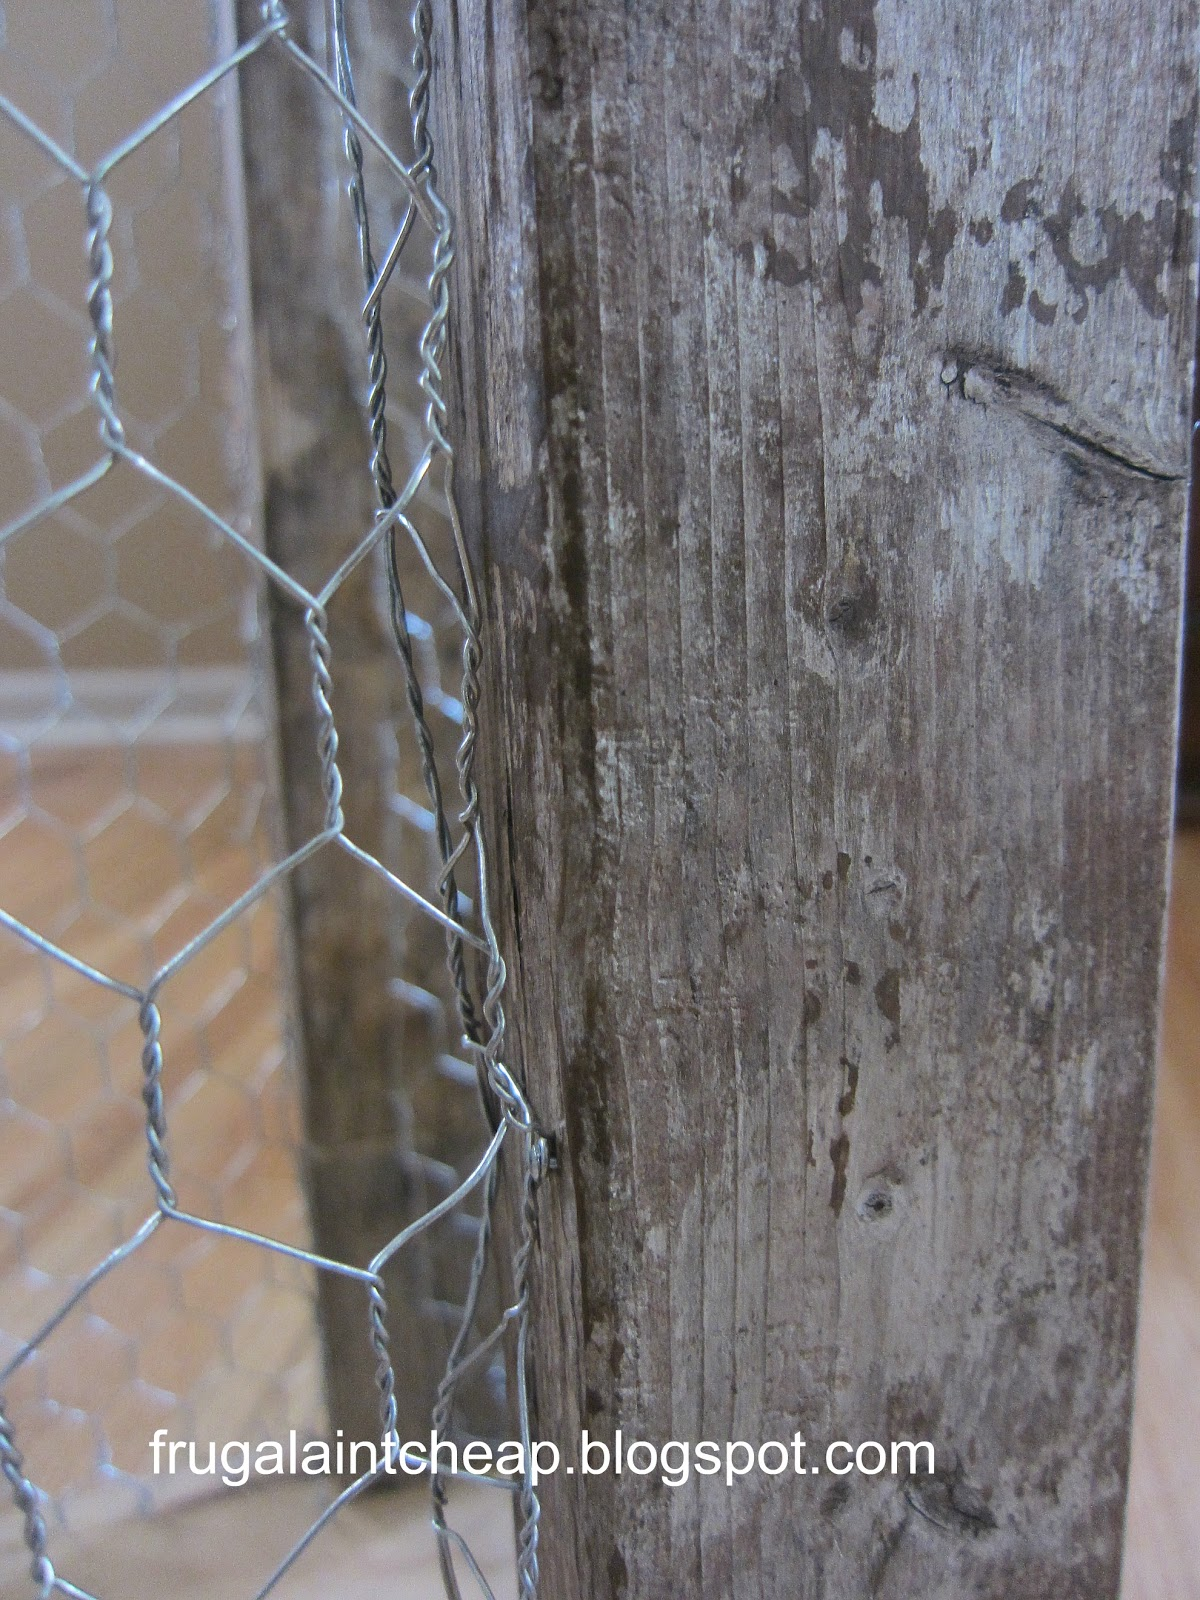 Frugal Ain\'t Cheap: Chicken wire project